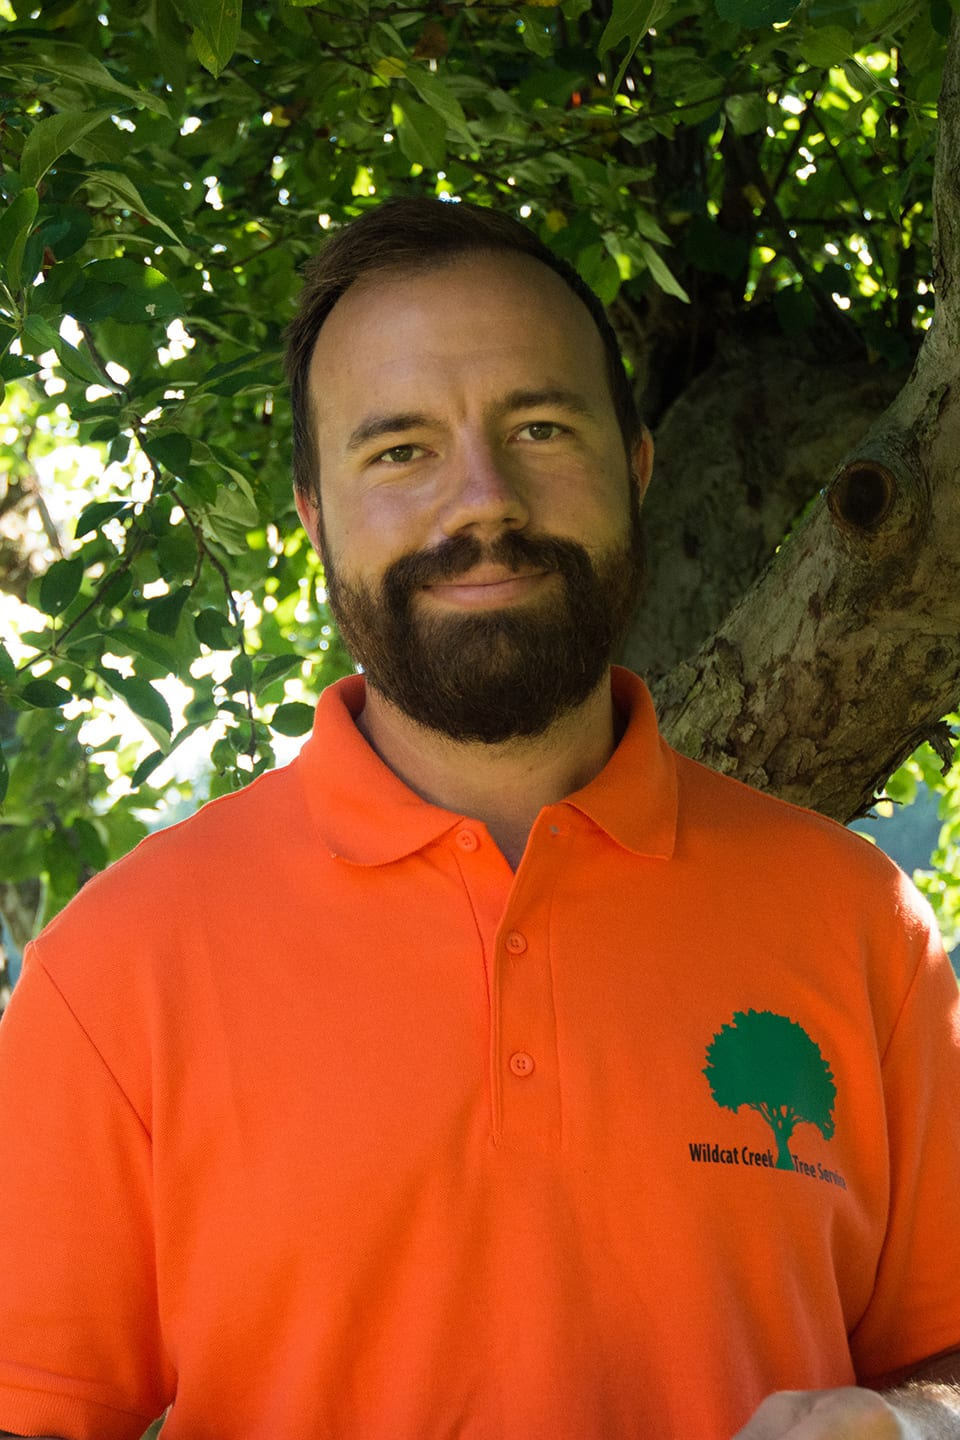 jake uerkwitz is honored to be president of the ethical backed company wildcat creek tree service lafayette IN